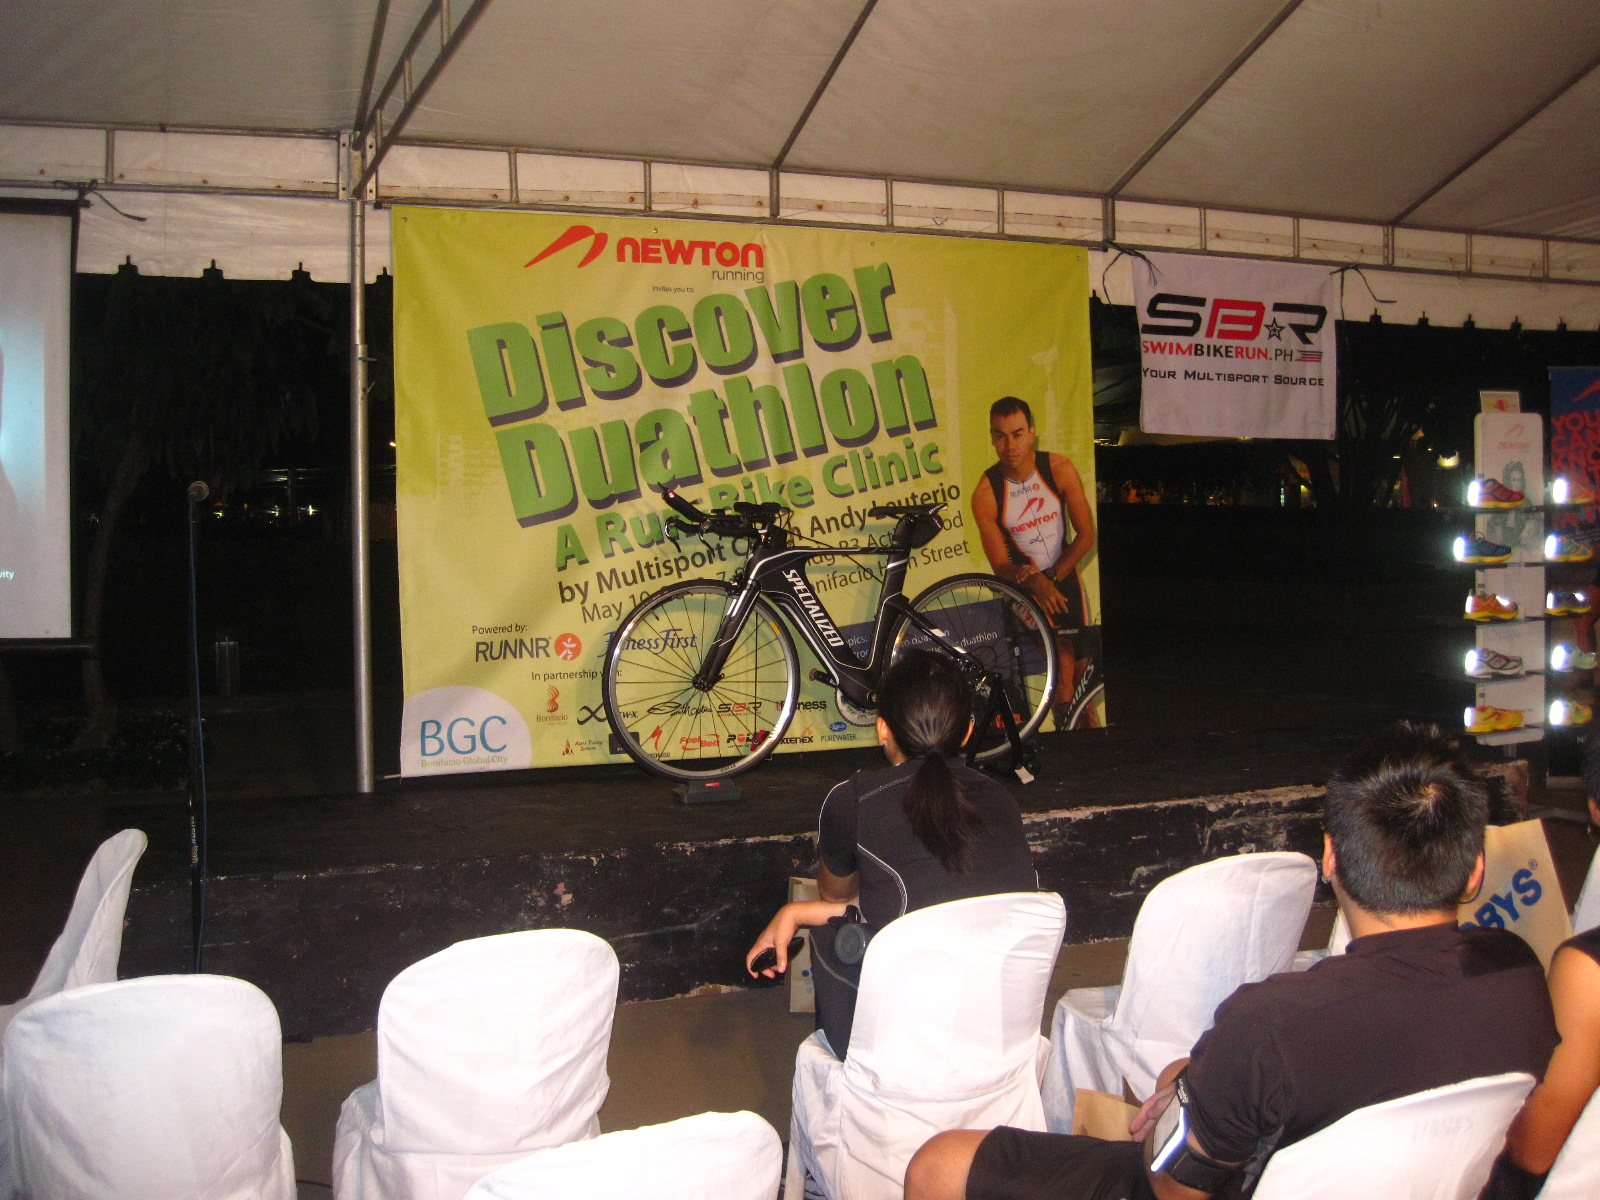 RUNNR Discover Duathlon: Setting the Stage